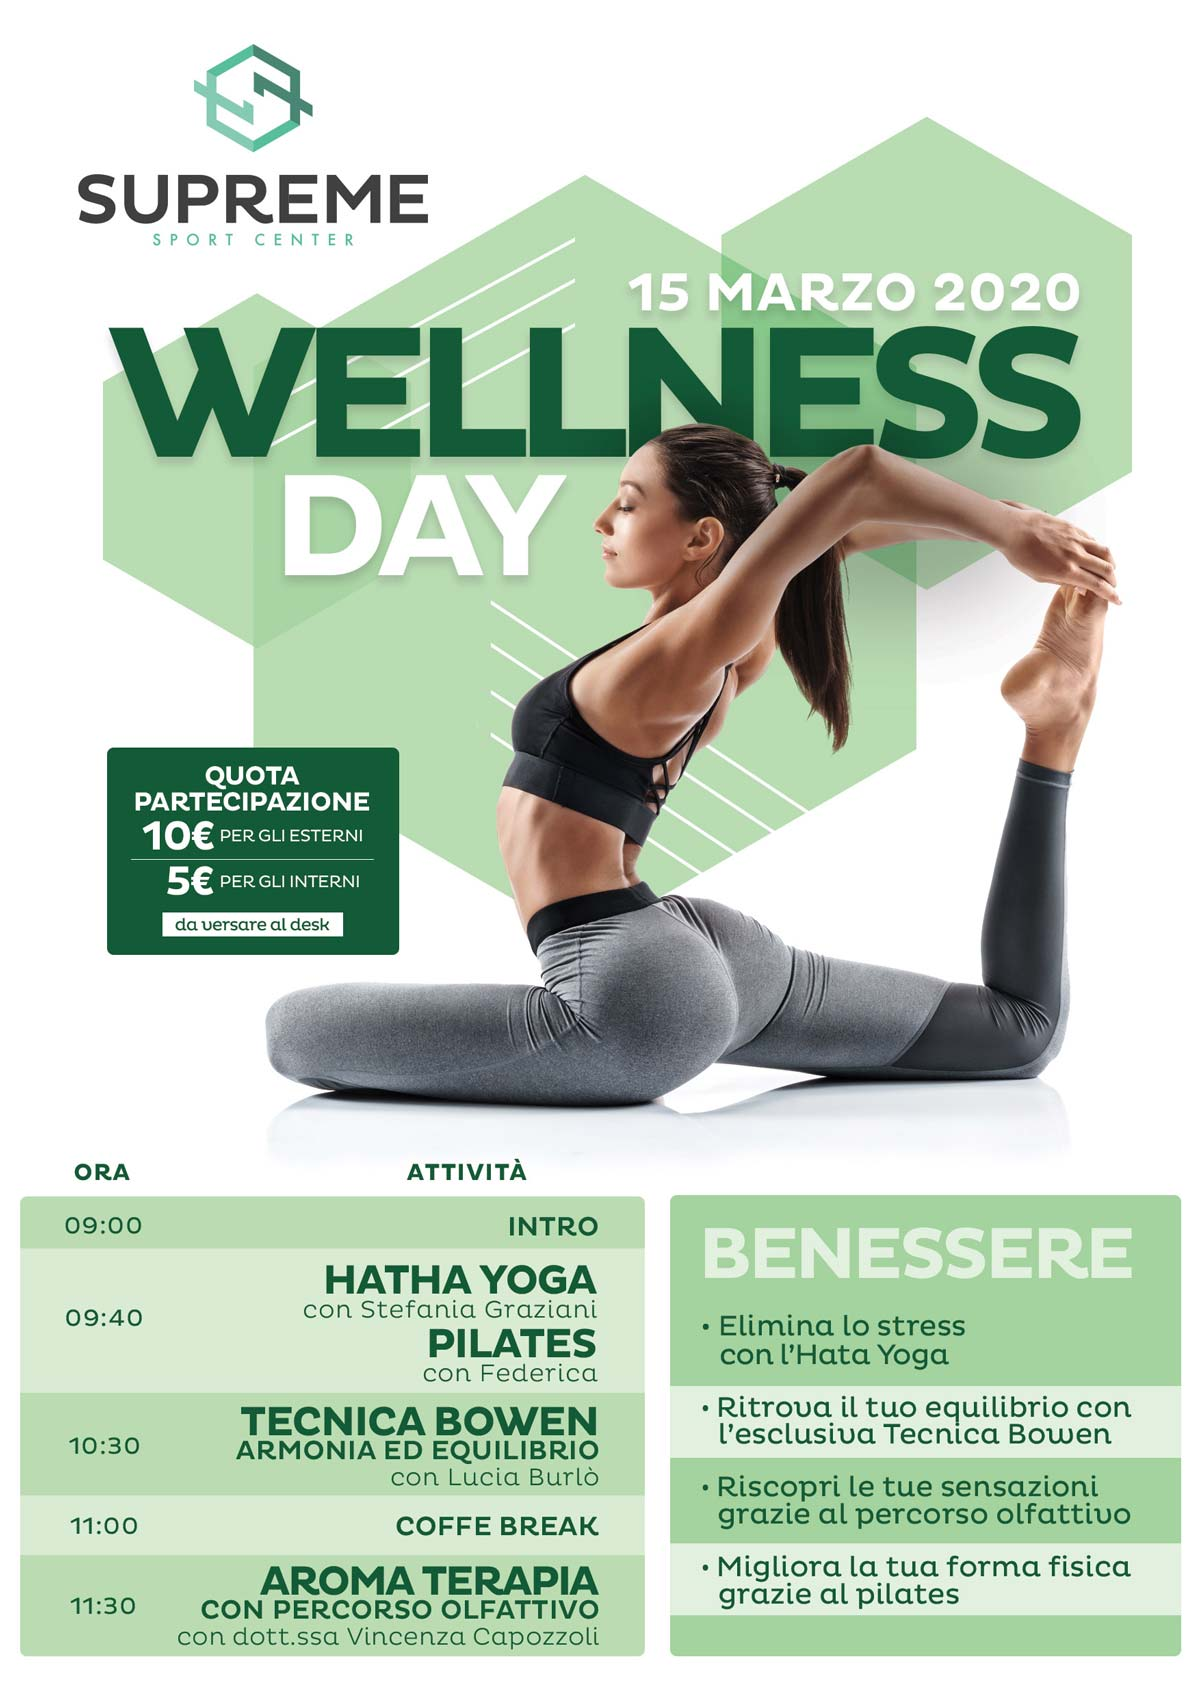 Wellness Day 15 Marzo 2020